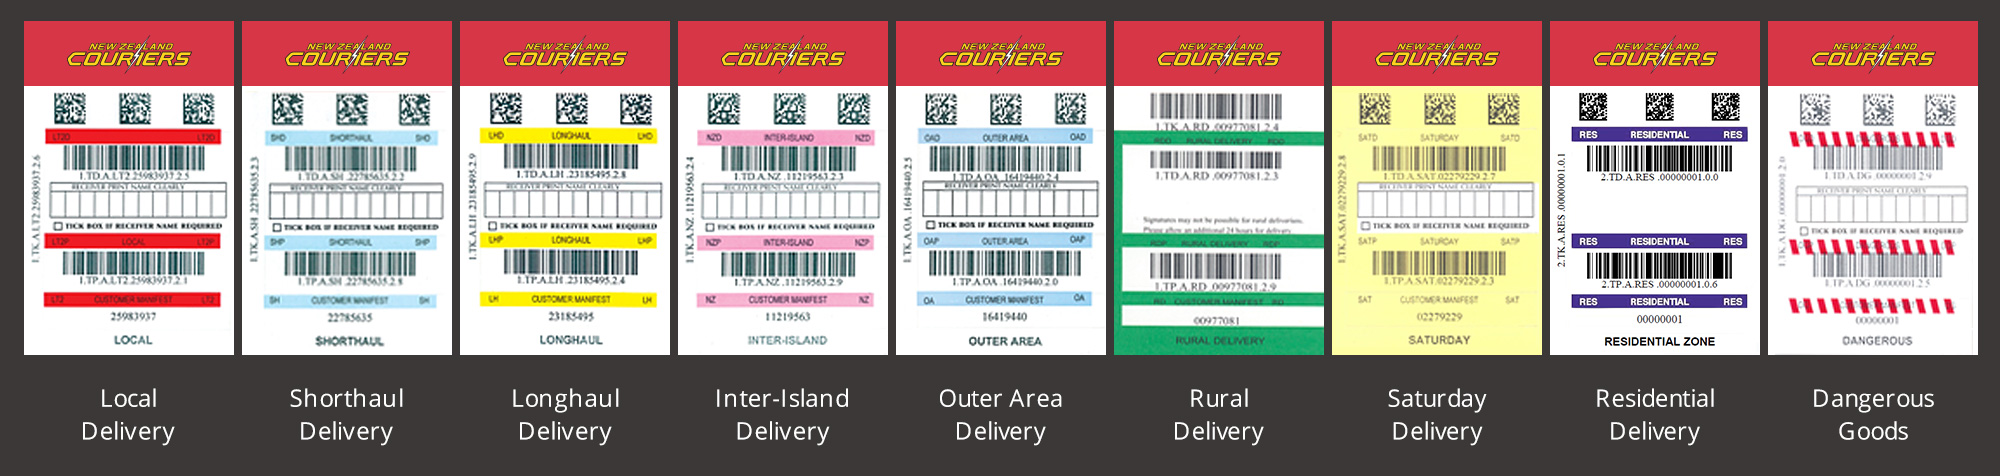 b965f201c74 Courier Tickets   Saturday Deliveries   NZ Couriers   Rural Delivery